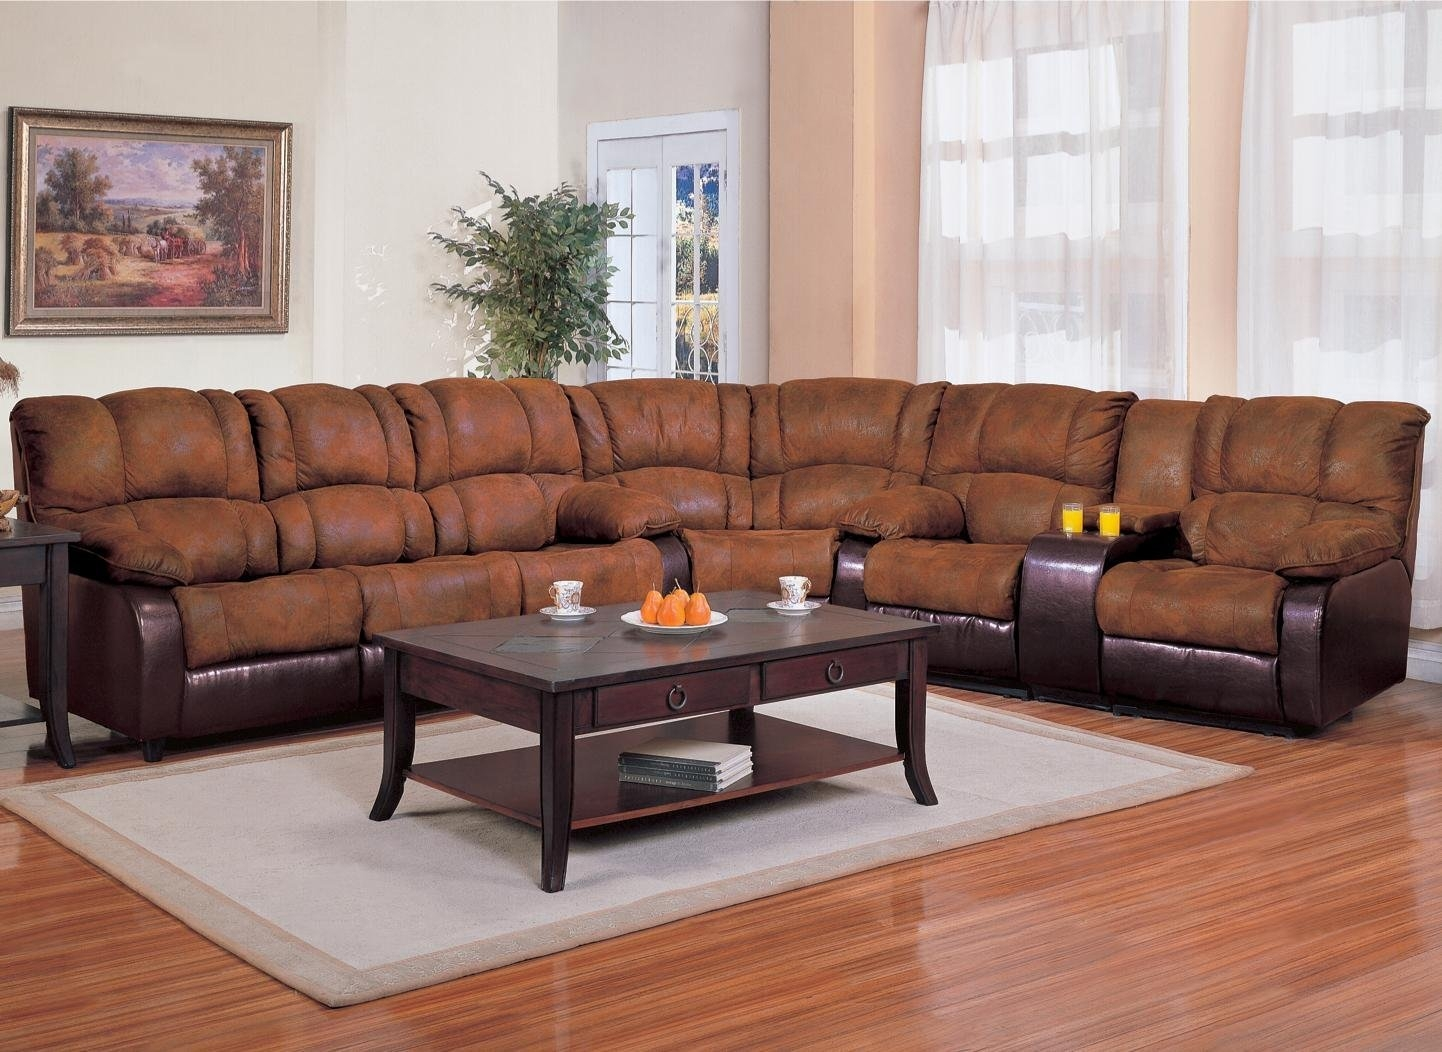 Furniture Rug Fancy Sectional Sleeper Sofa For Best Home Pertaining To C Shaped Sectional Sofa (Image 9 of 15)